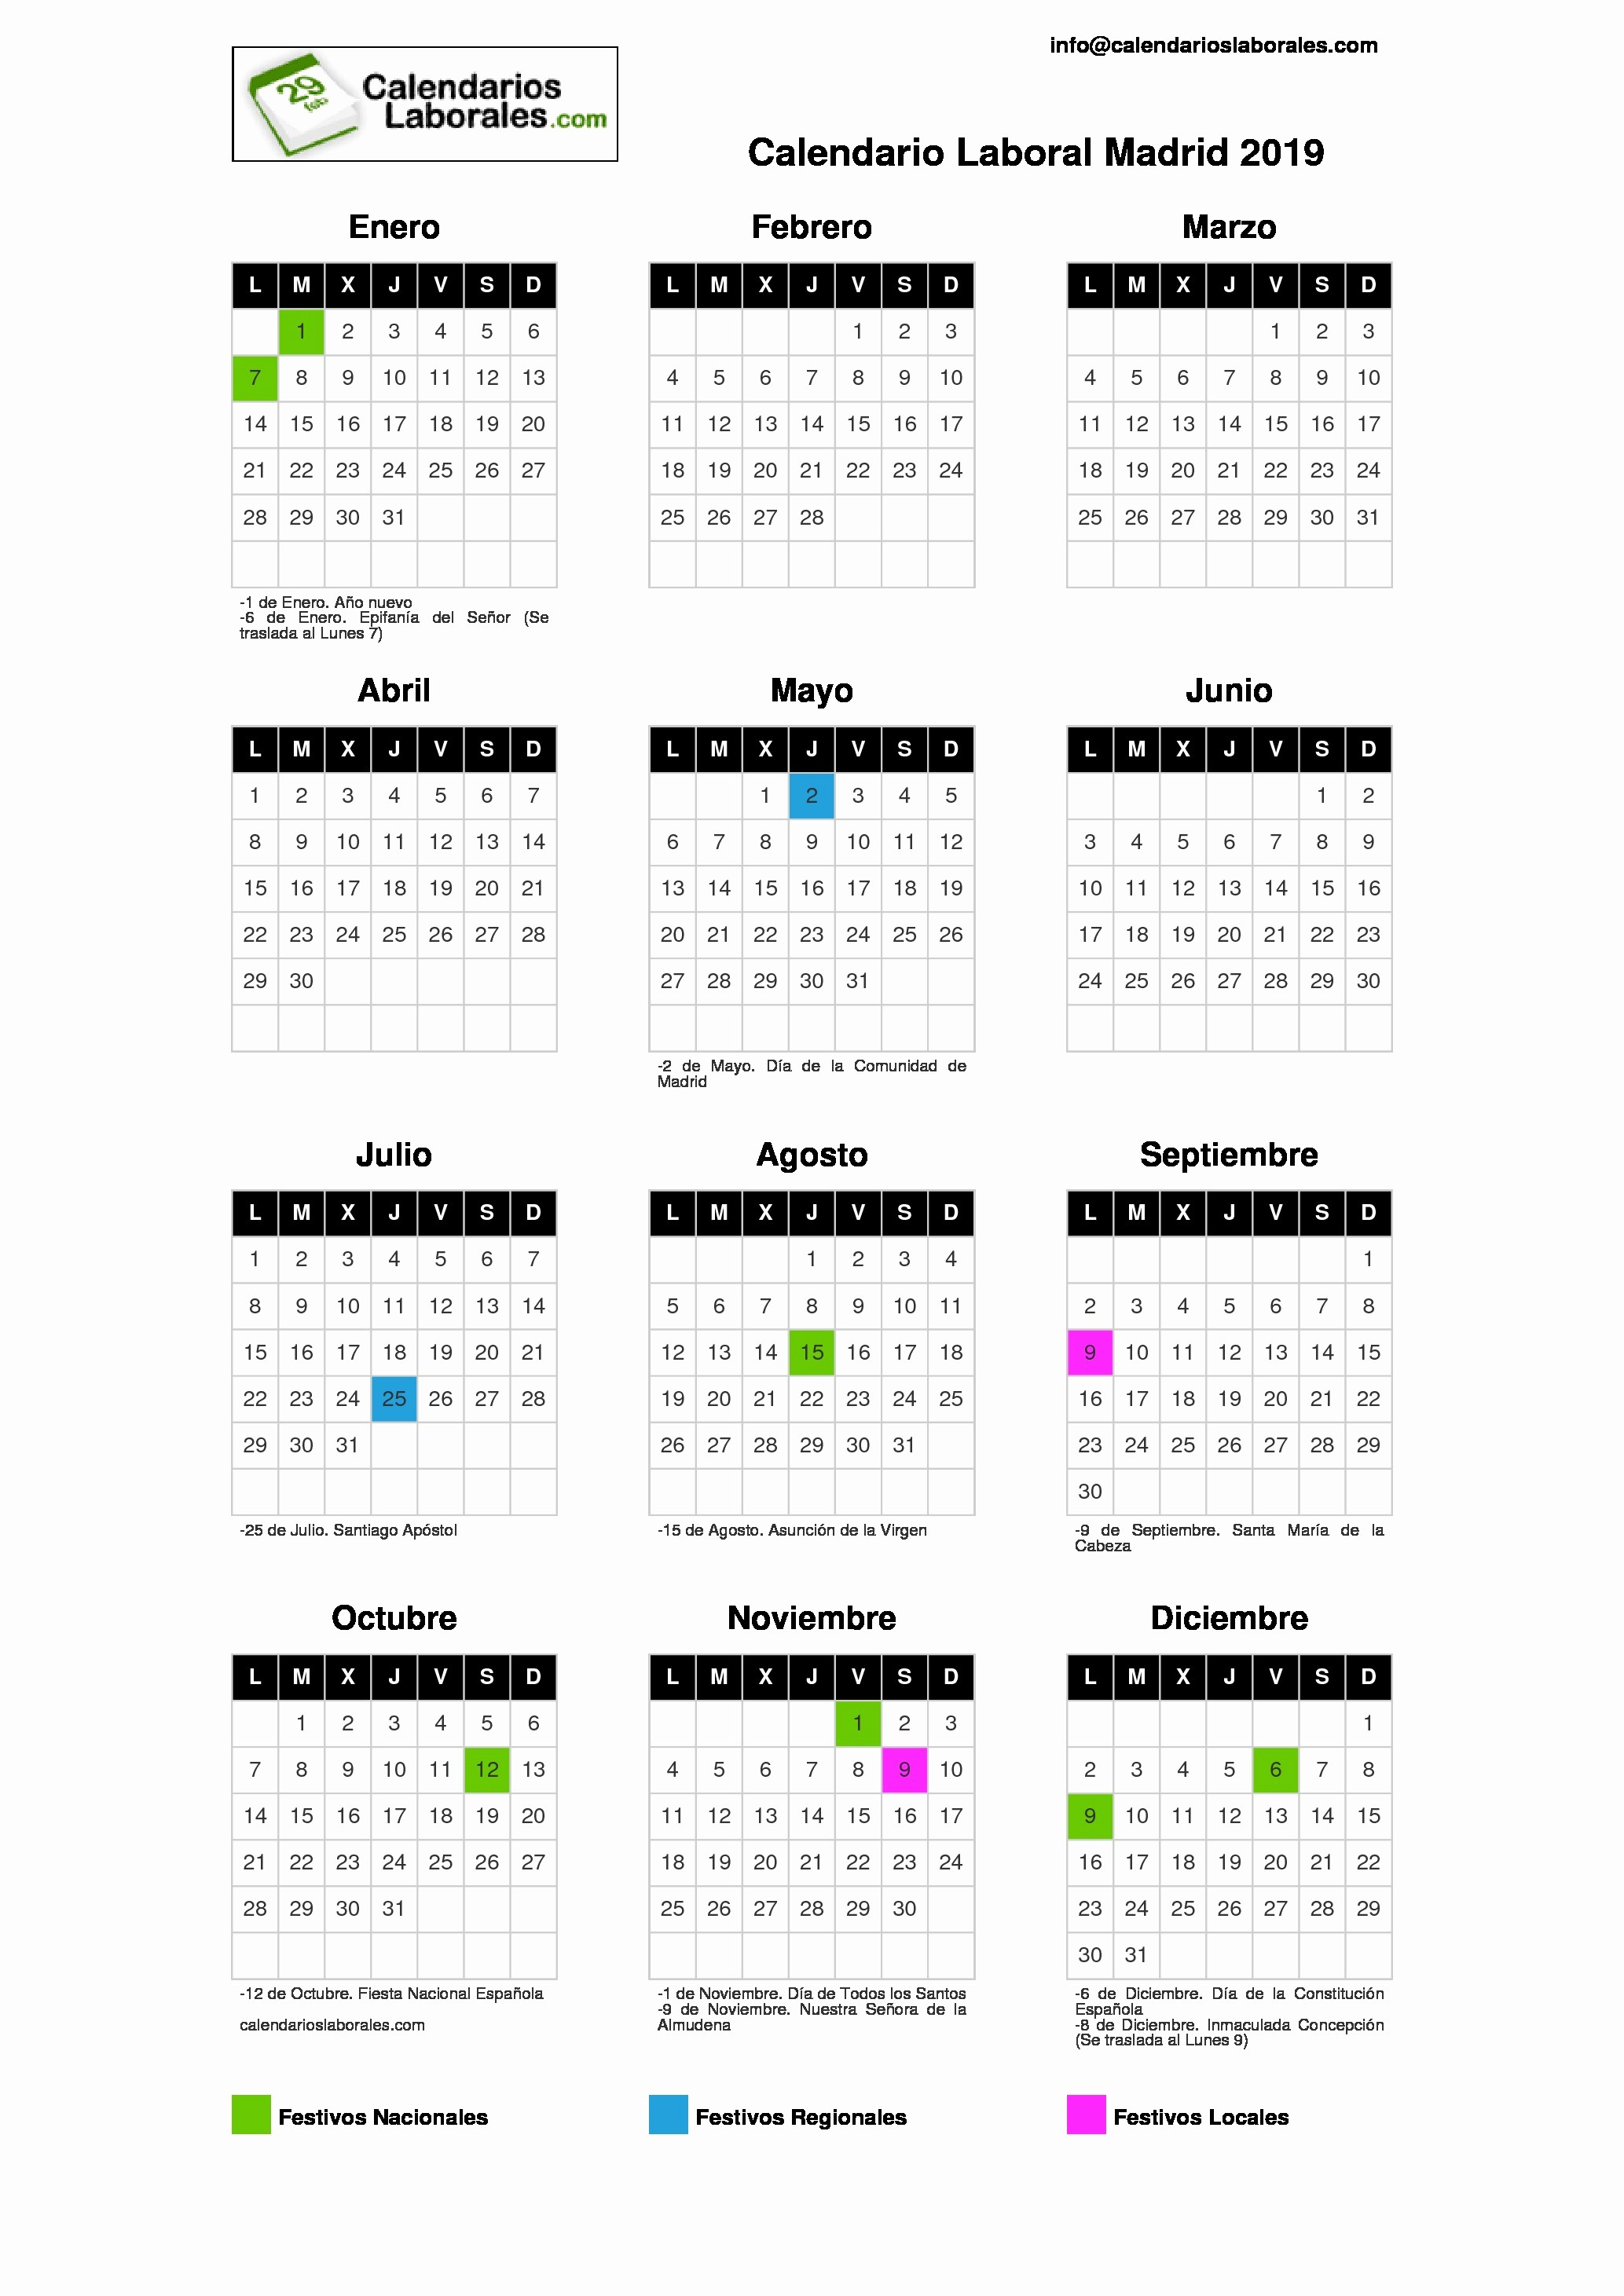 Calendario Dr 2019 Calendario Laboral Madrid 2019